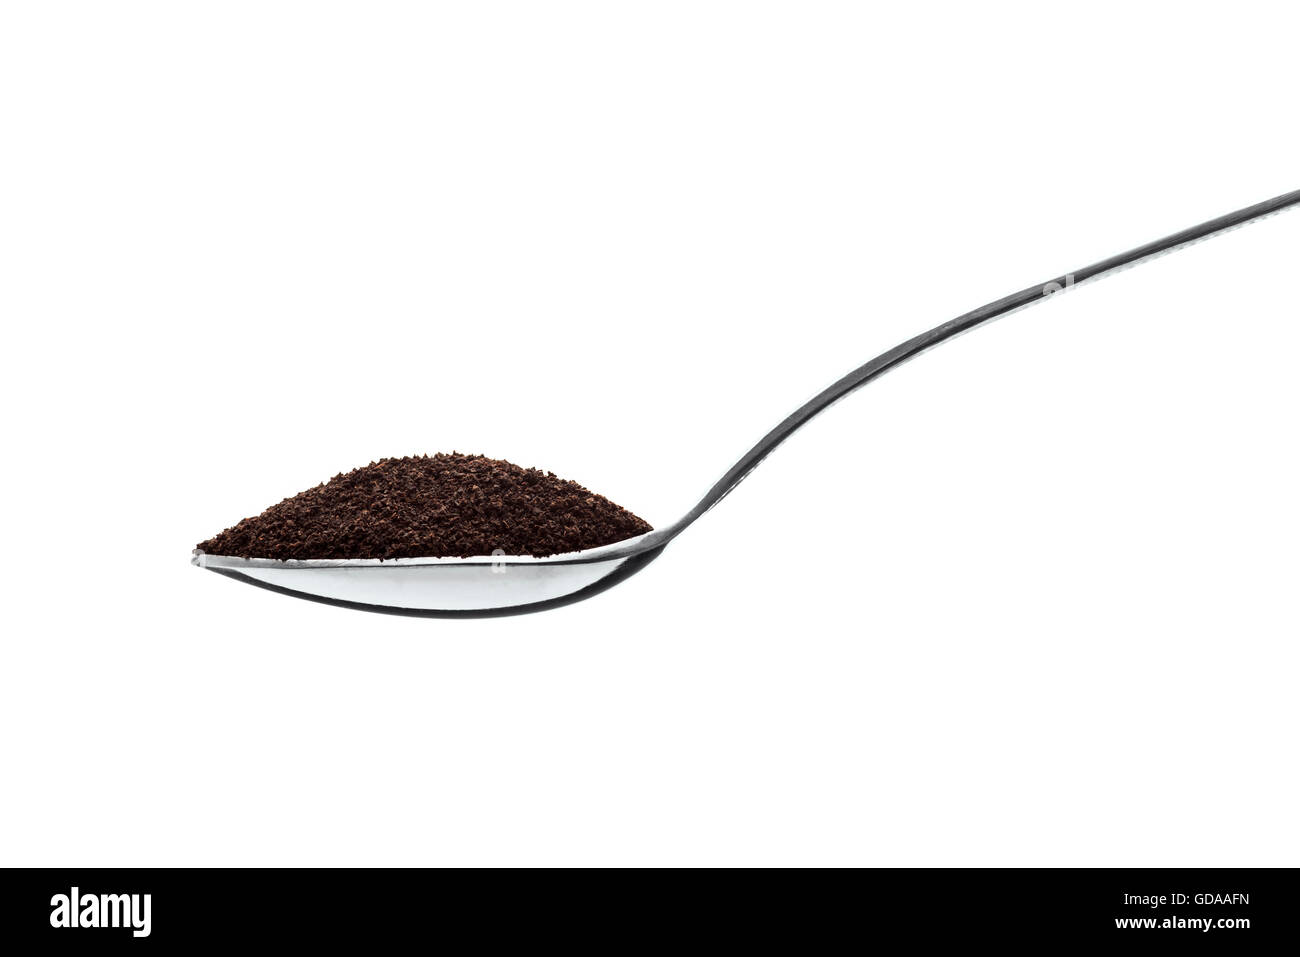 Teelöffel voll von schwarzem Staub Tee, Isolated on White Background Stockbild